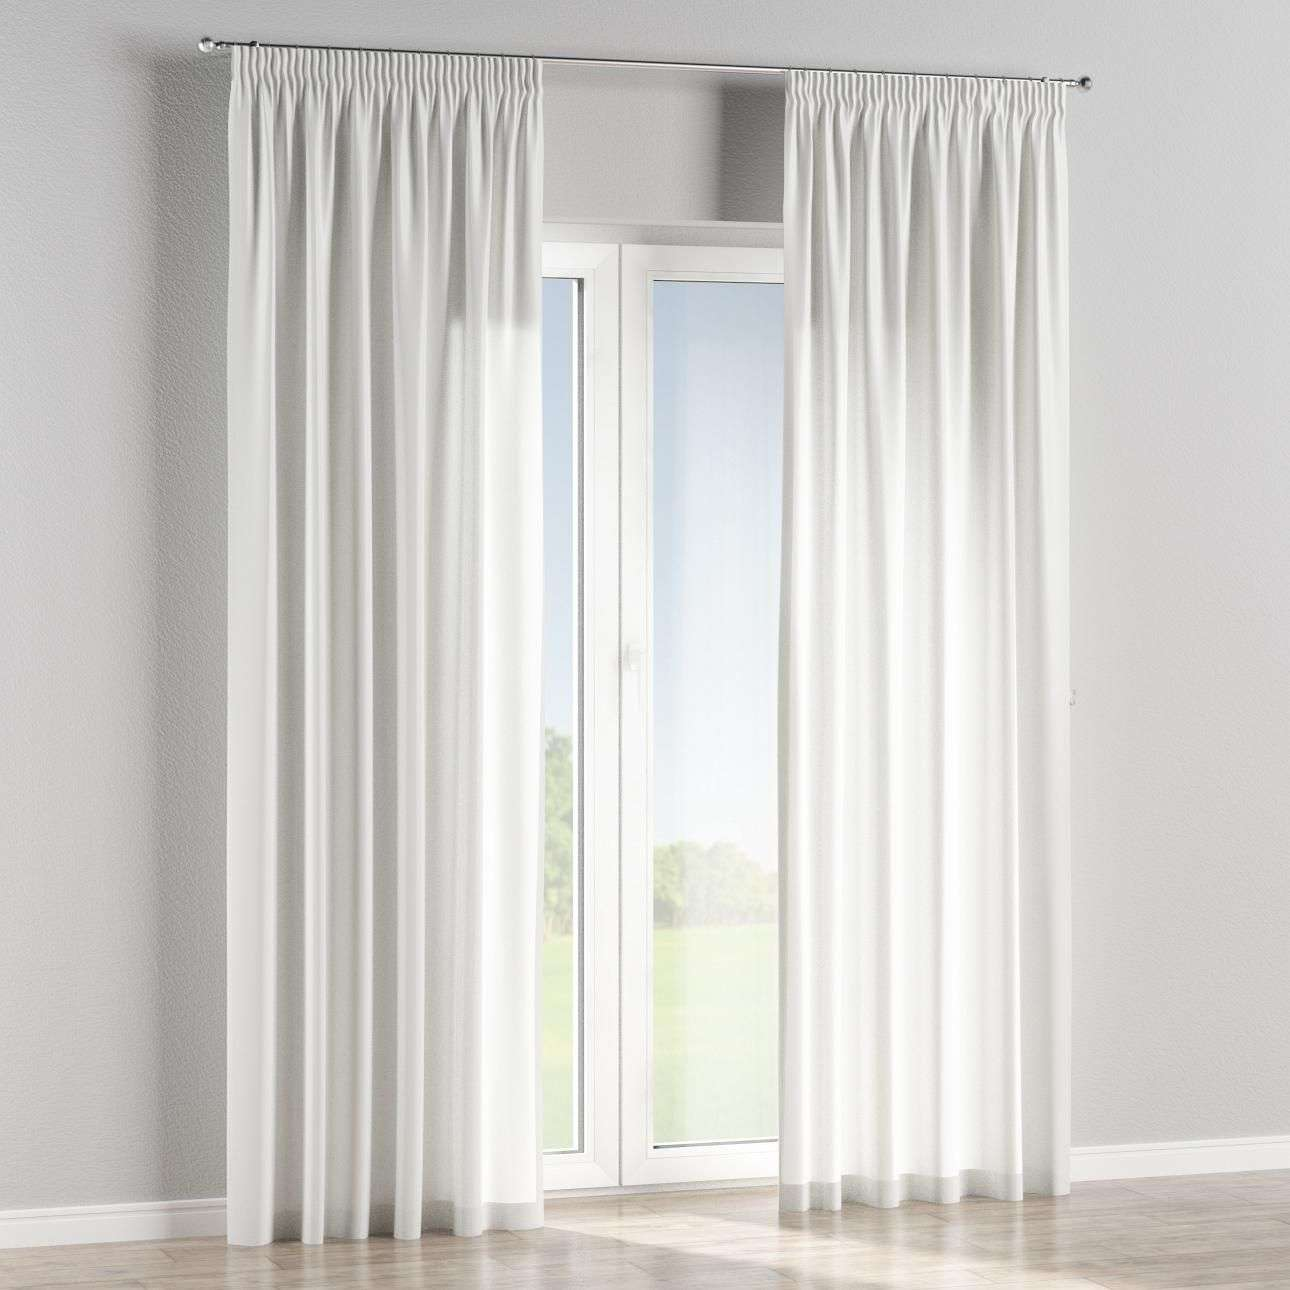 Pencil pleat lined curtains in collection Rustica, fabric: 138-22